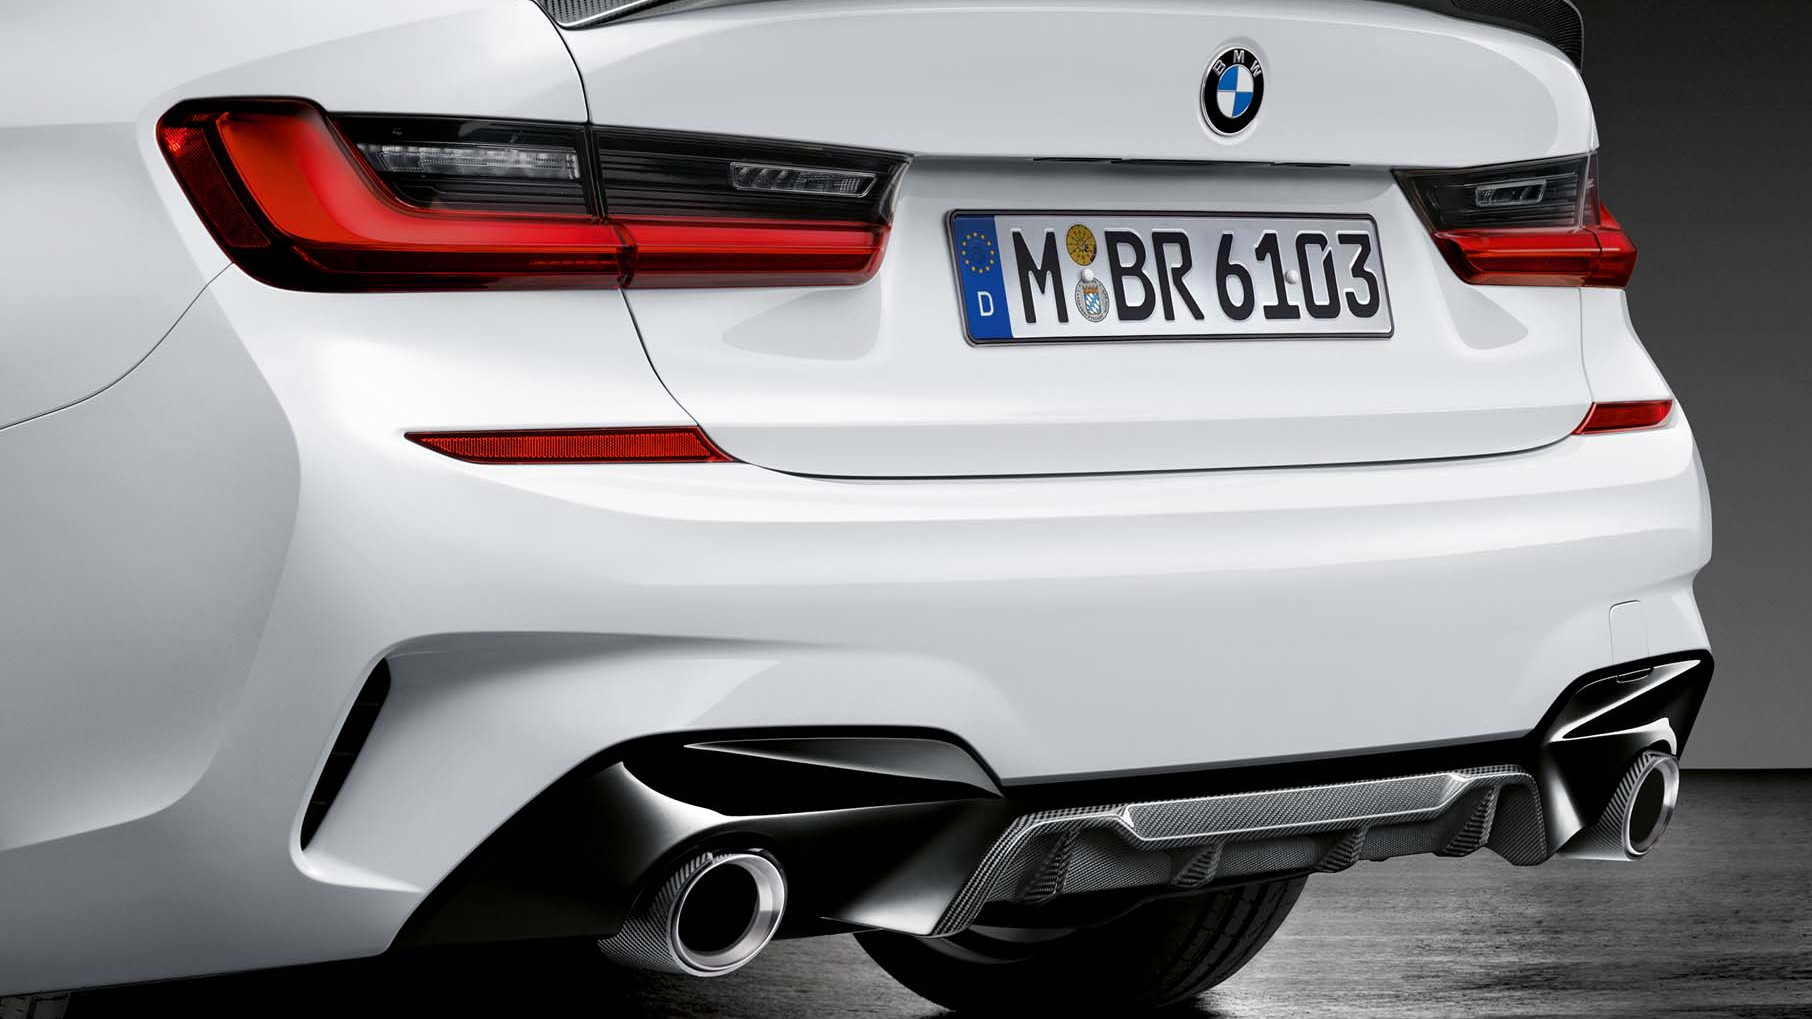 bmw is ready with m performance parts for the new 3 series2019 bmw 3 series m performance parts